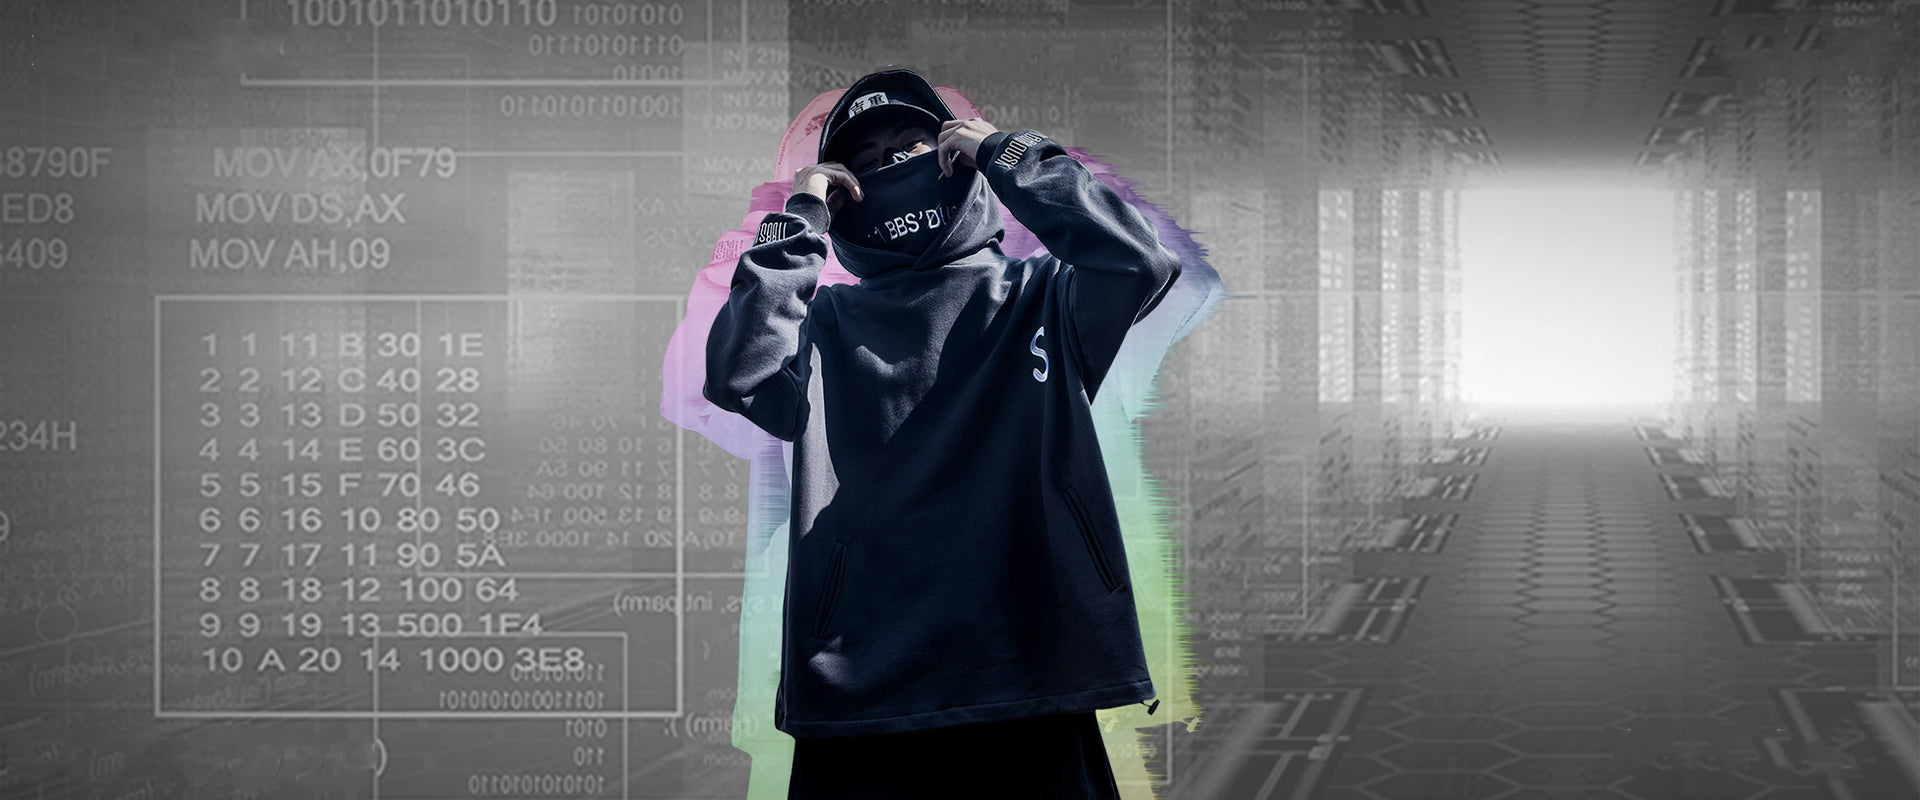 Join Clotechnow and wear the futuristic clothing styles - Techwear shop